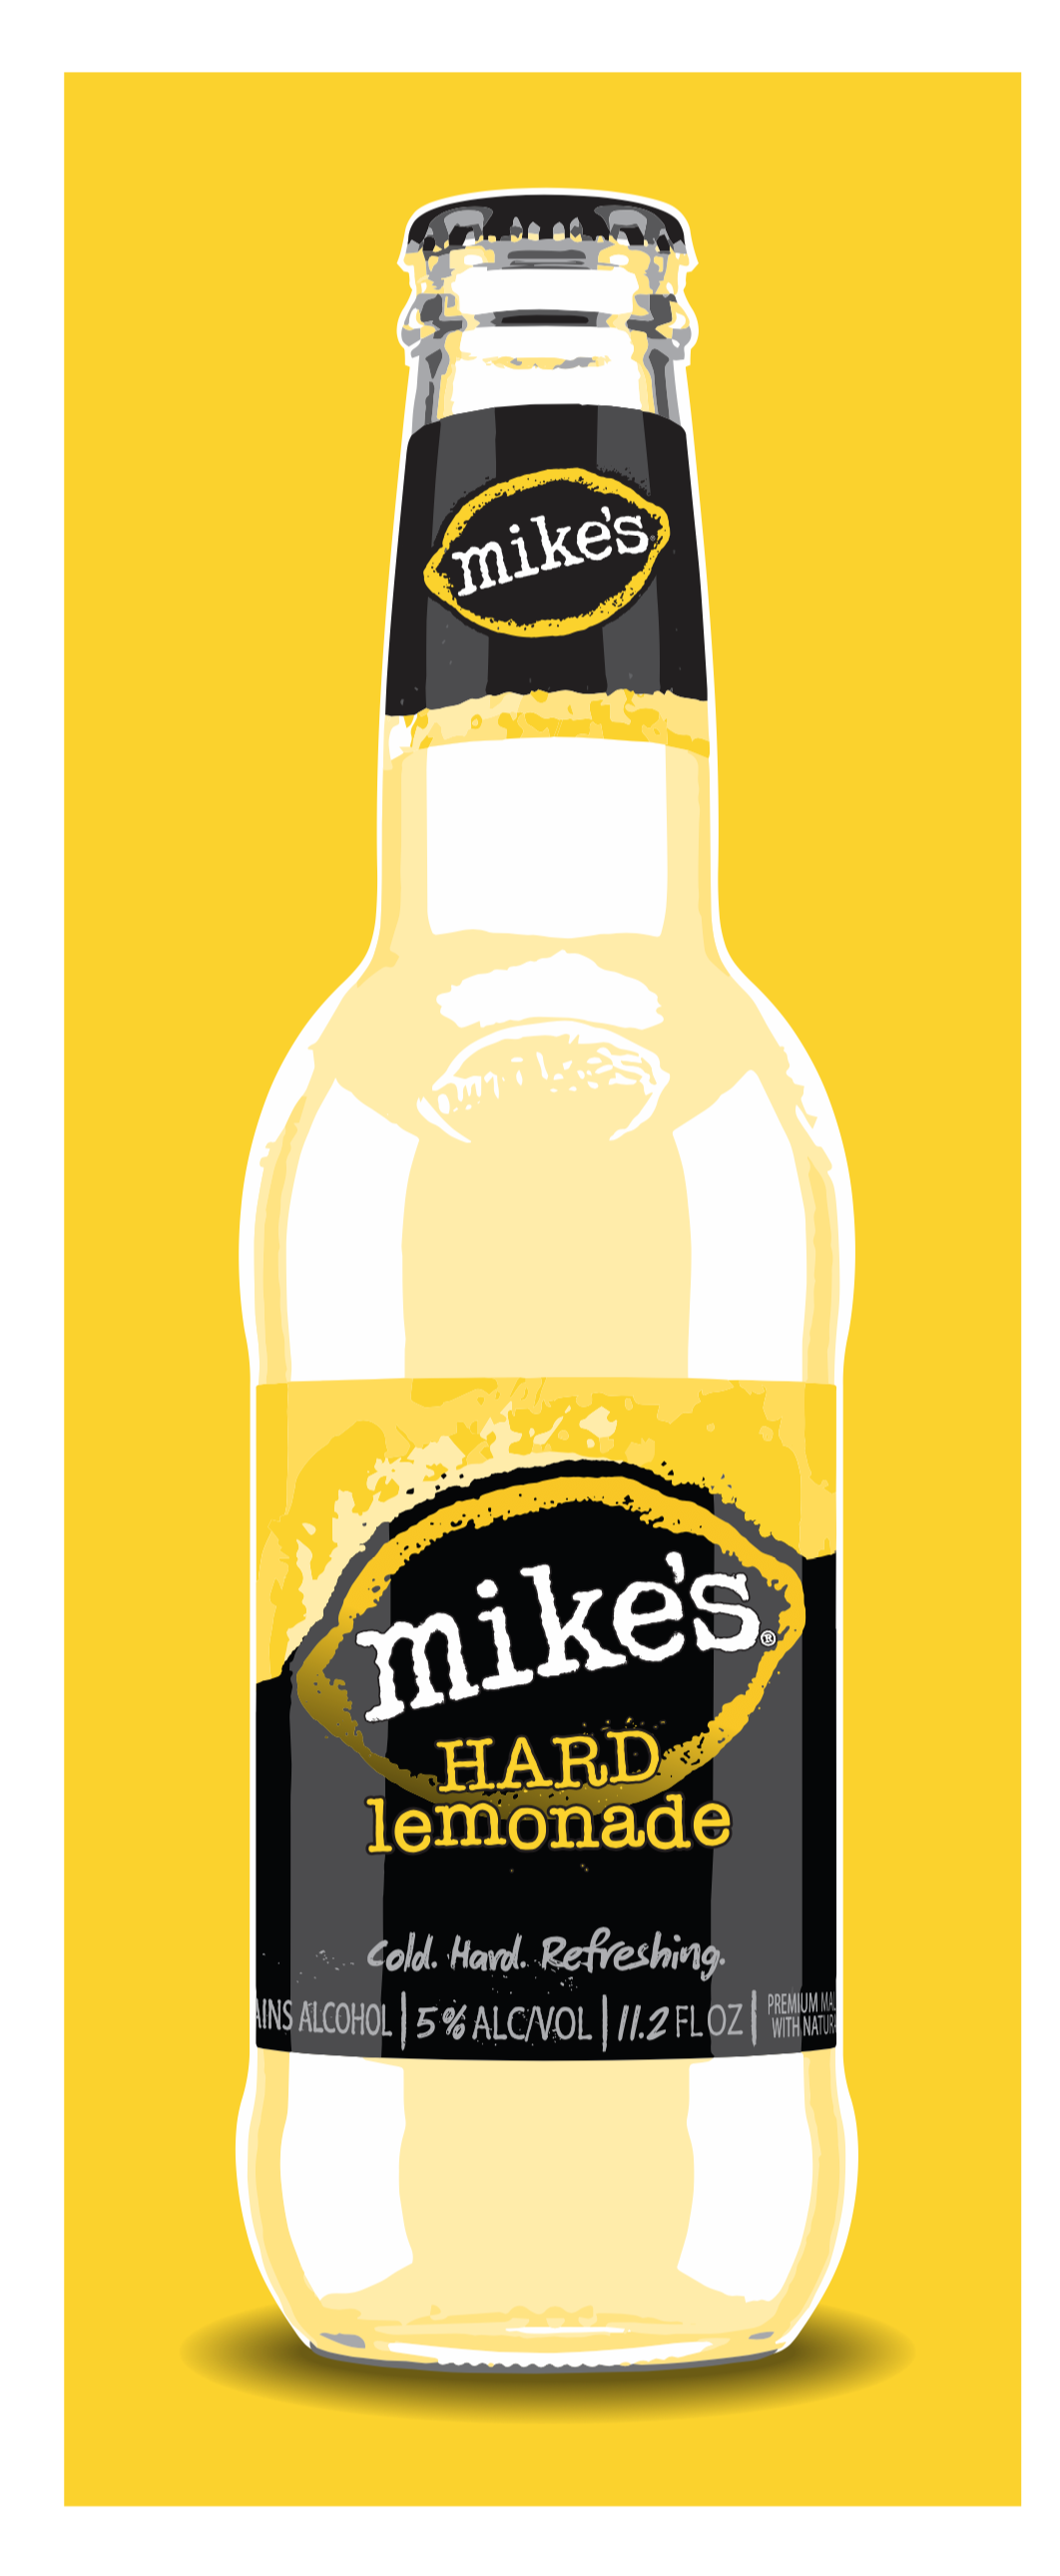 mikes_hard_lemonade_bottle